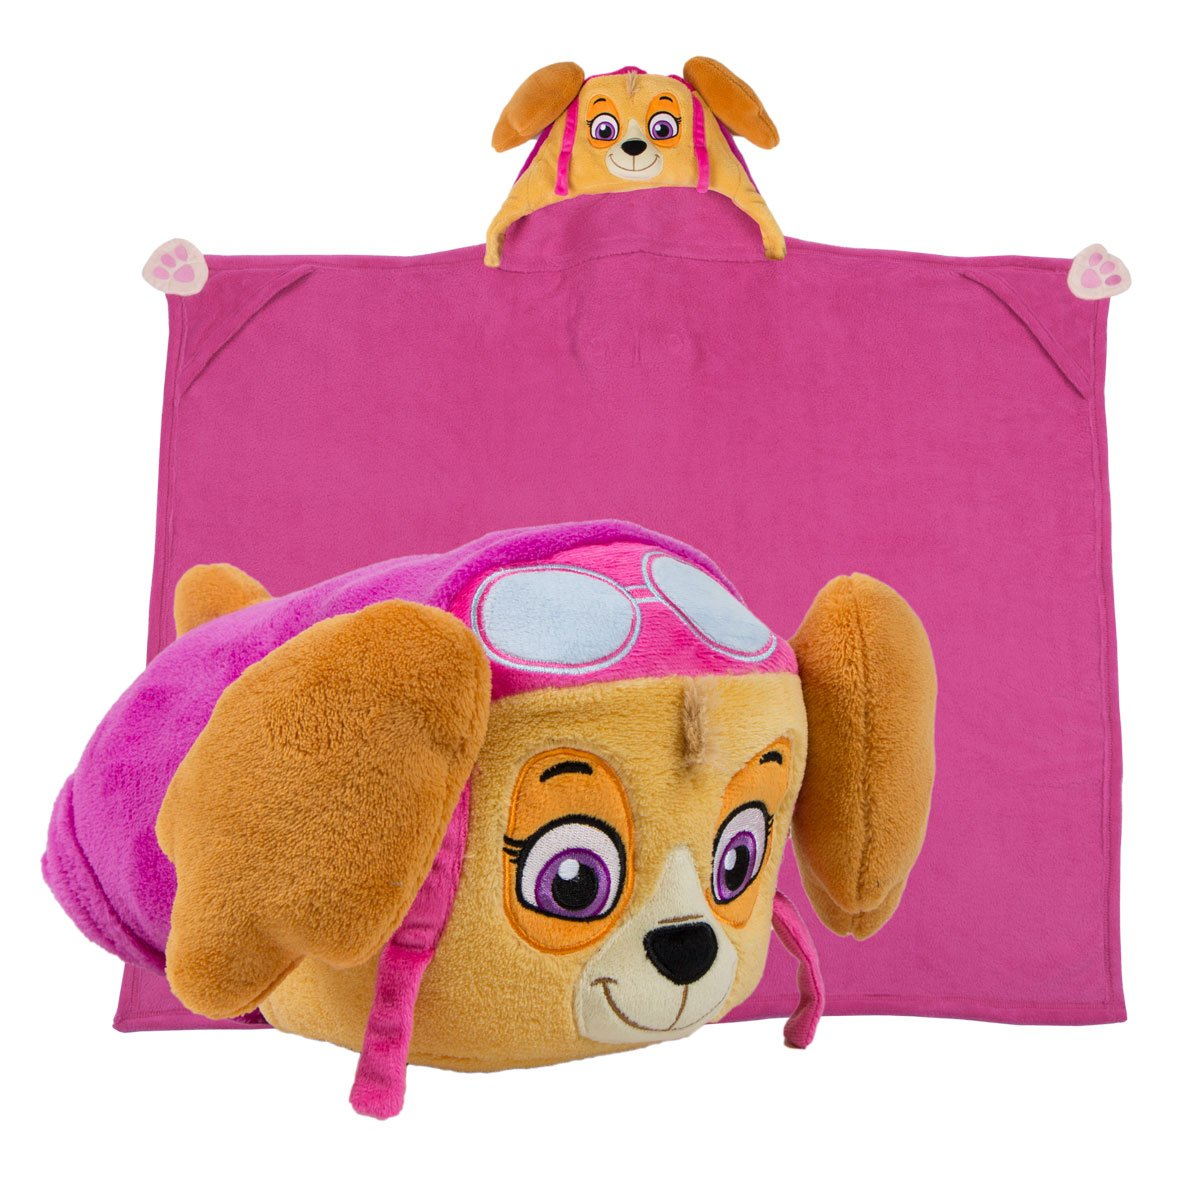 Comfy Critters Stuffed Animal Plush Blanket – PAW Patrol Skye – Kids wearable pillow and blanket perfect for pretend play, travel, nap time.